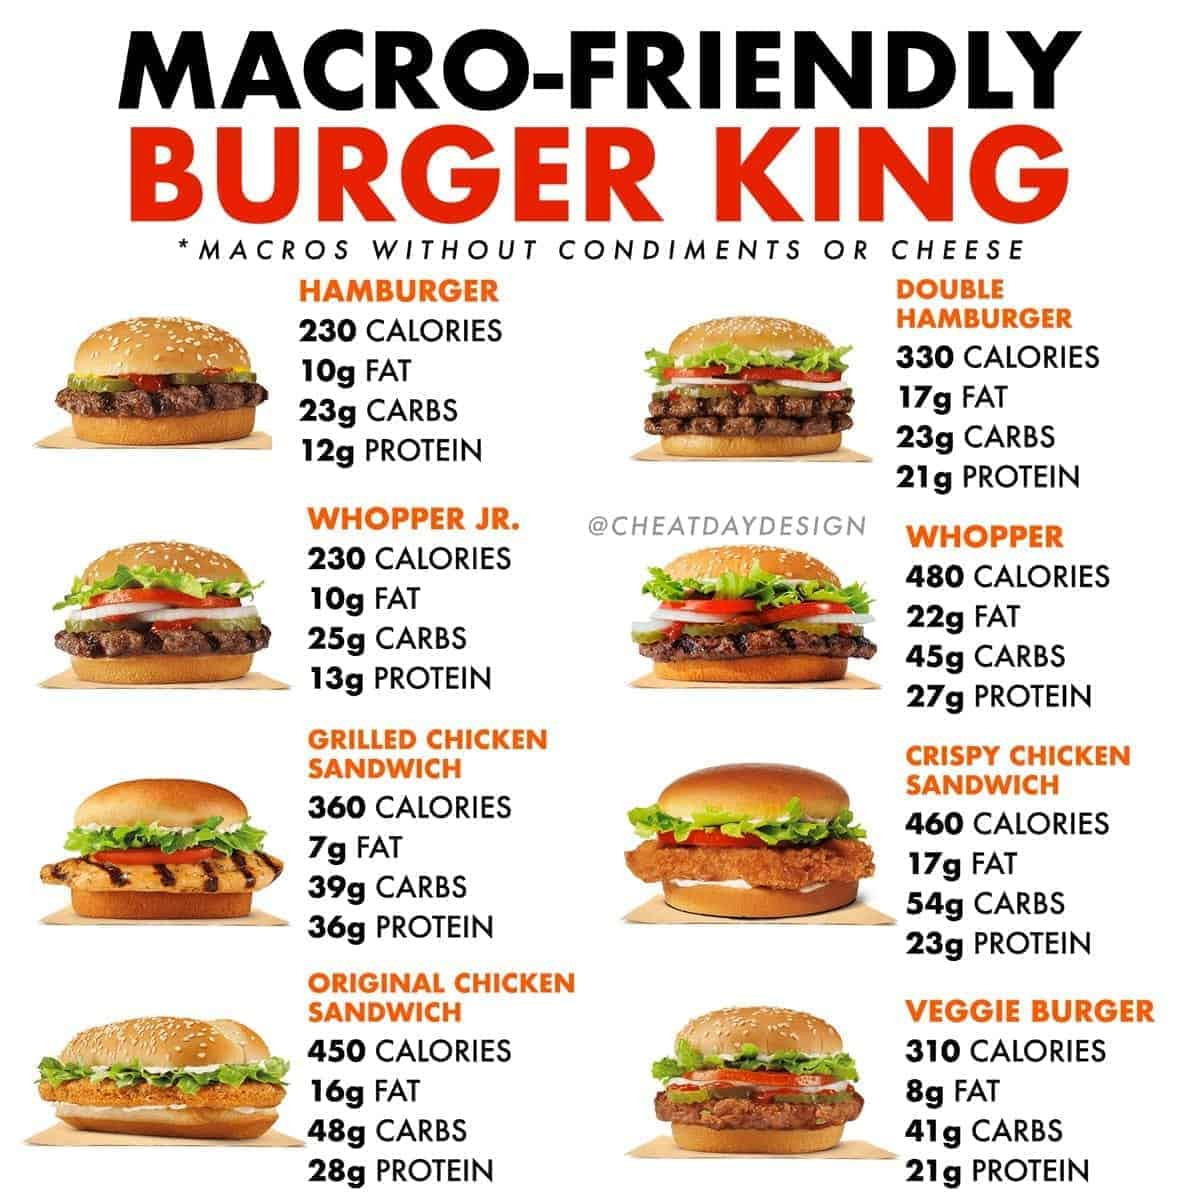 Macro friendly, healthy foods are Burger King